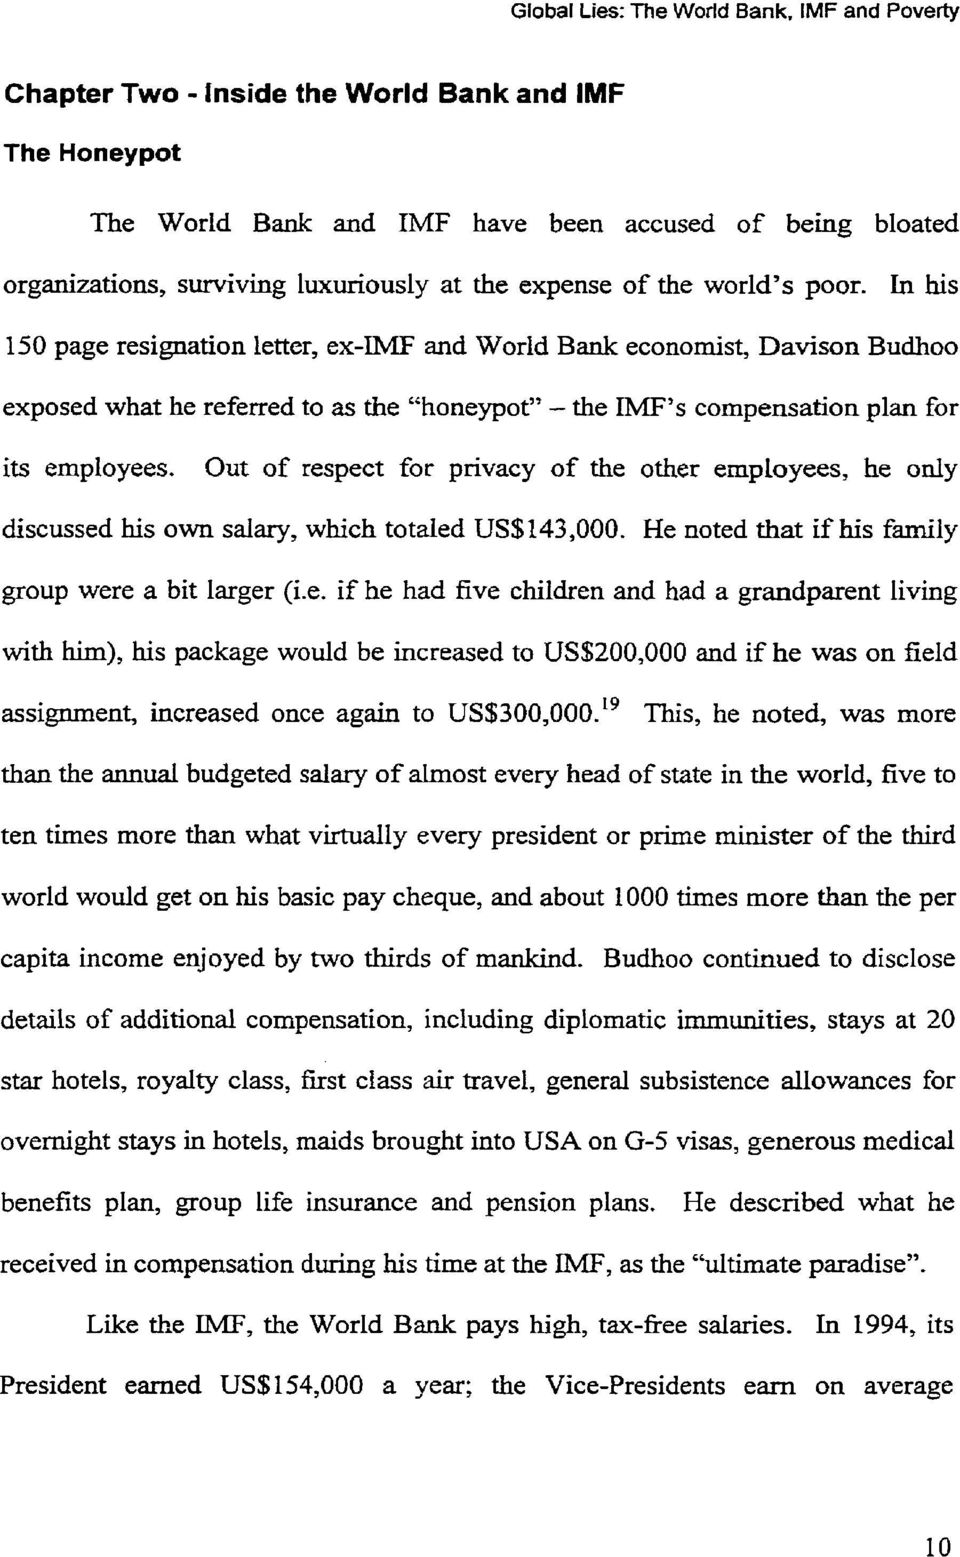 "poor. In his 150 page resignation letter, ex-imf and World Bank economist, Davison Budhoo exposed what he referred to as the ""honeypoty'- the IMFYs compensation plan for its emptoyees."